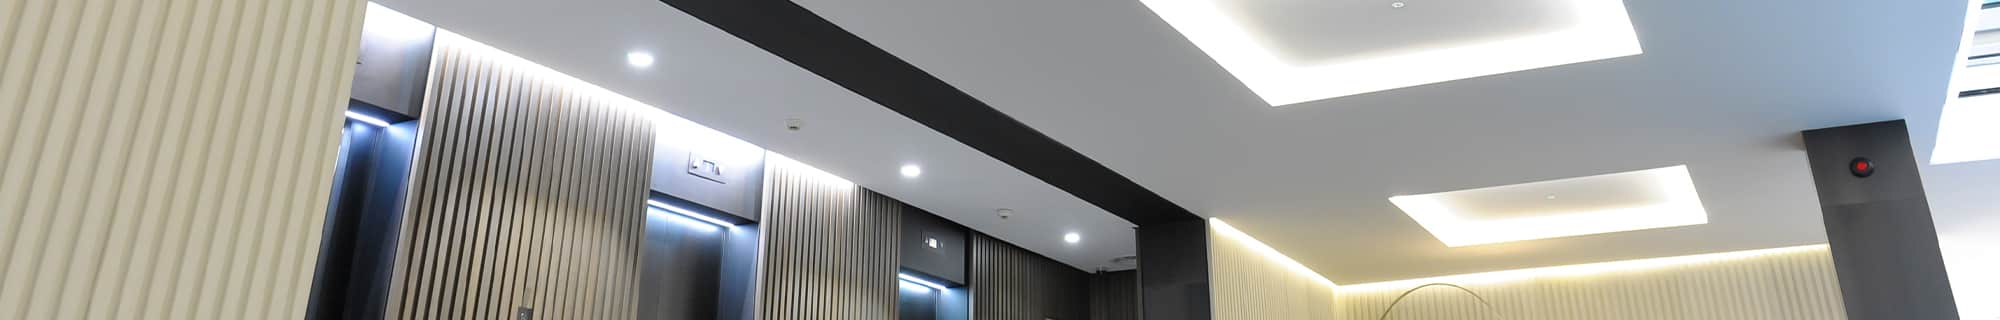 LED recessed down lights